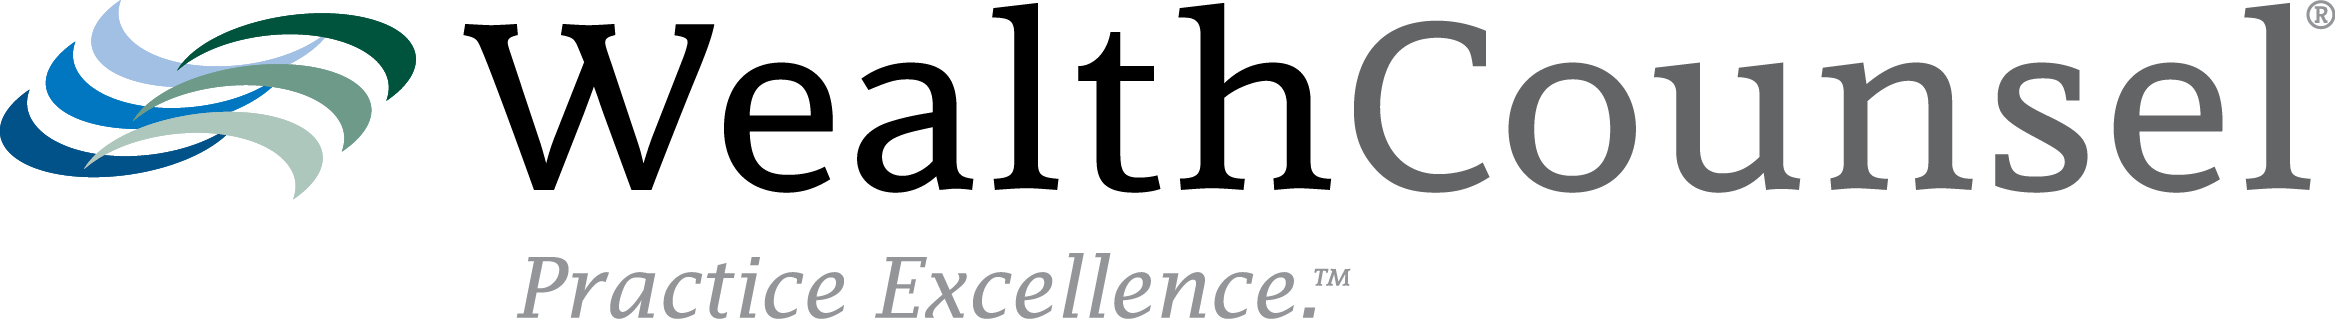 WealthCounsel: Practice Excellence!